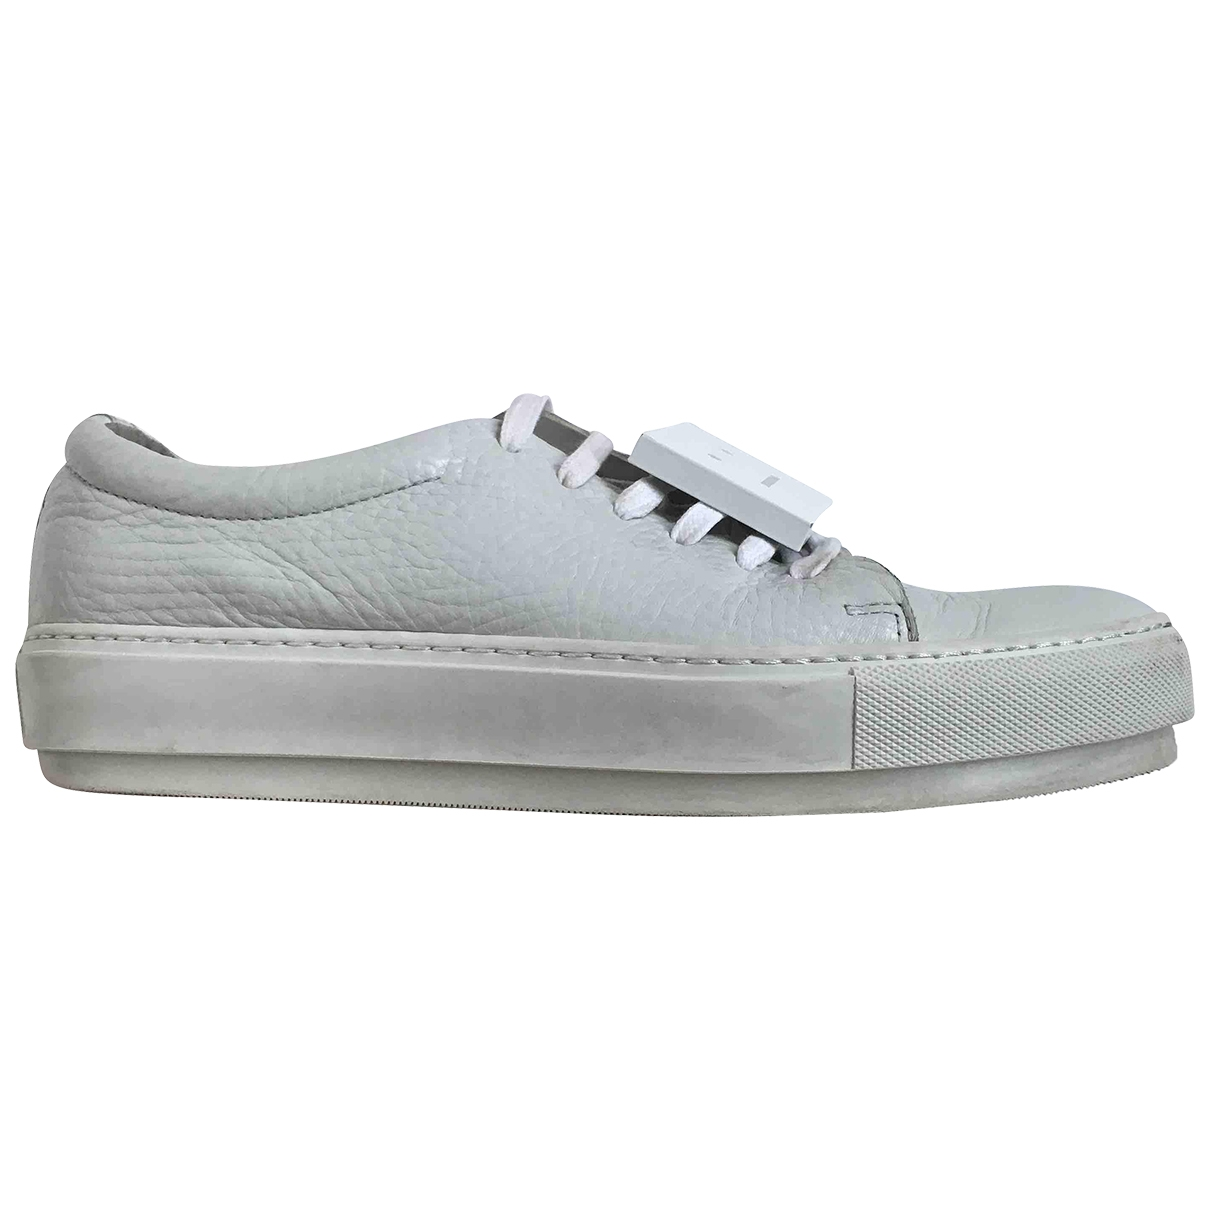 Acne Studios \N White Leather Trainers for Women 41 EU